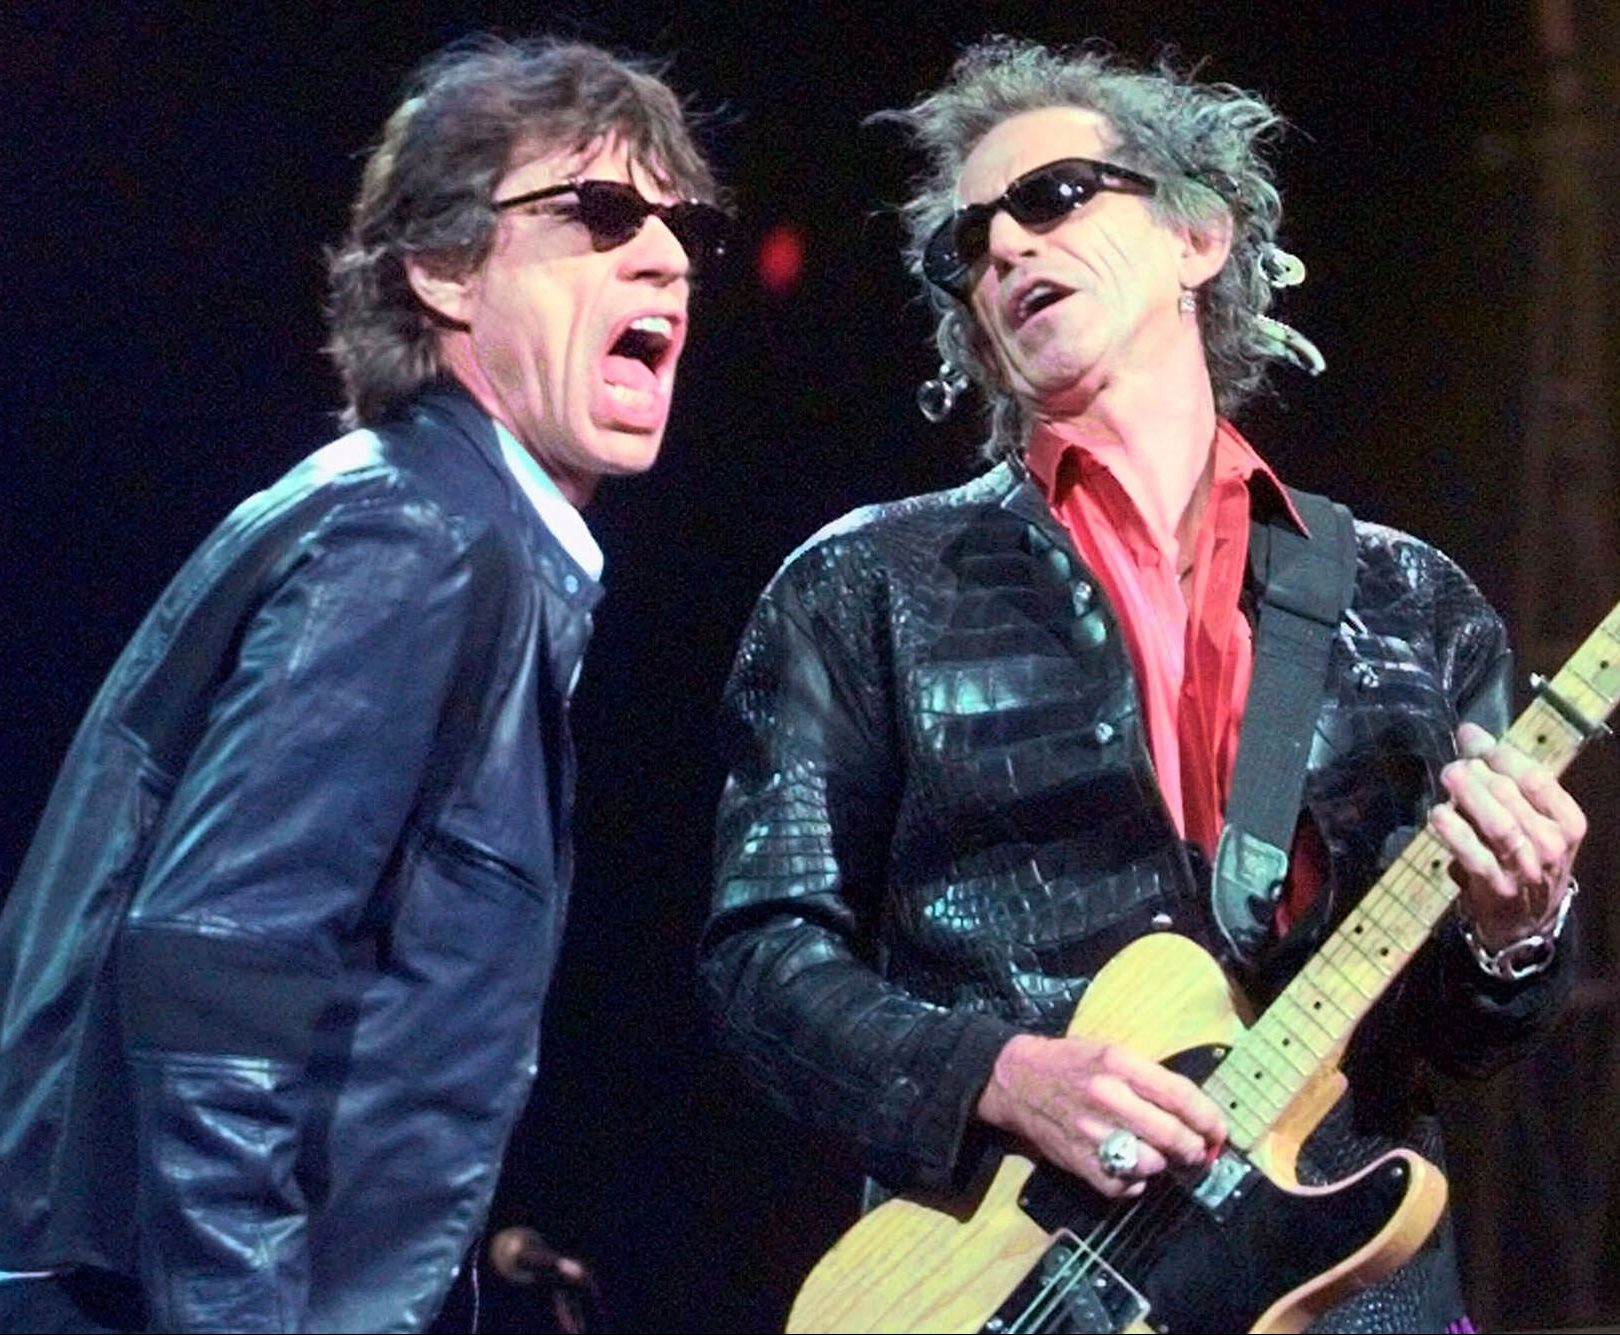 jaggerrichards e1606232285907 10 Things You Never Knew About The Rolling Stones